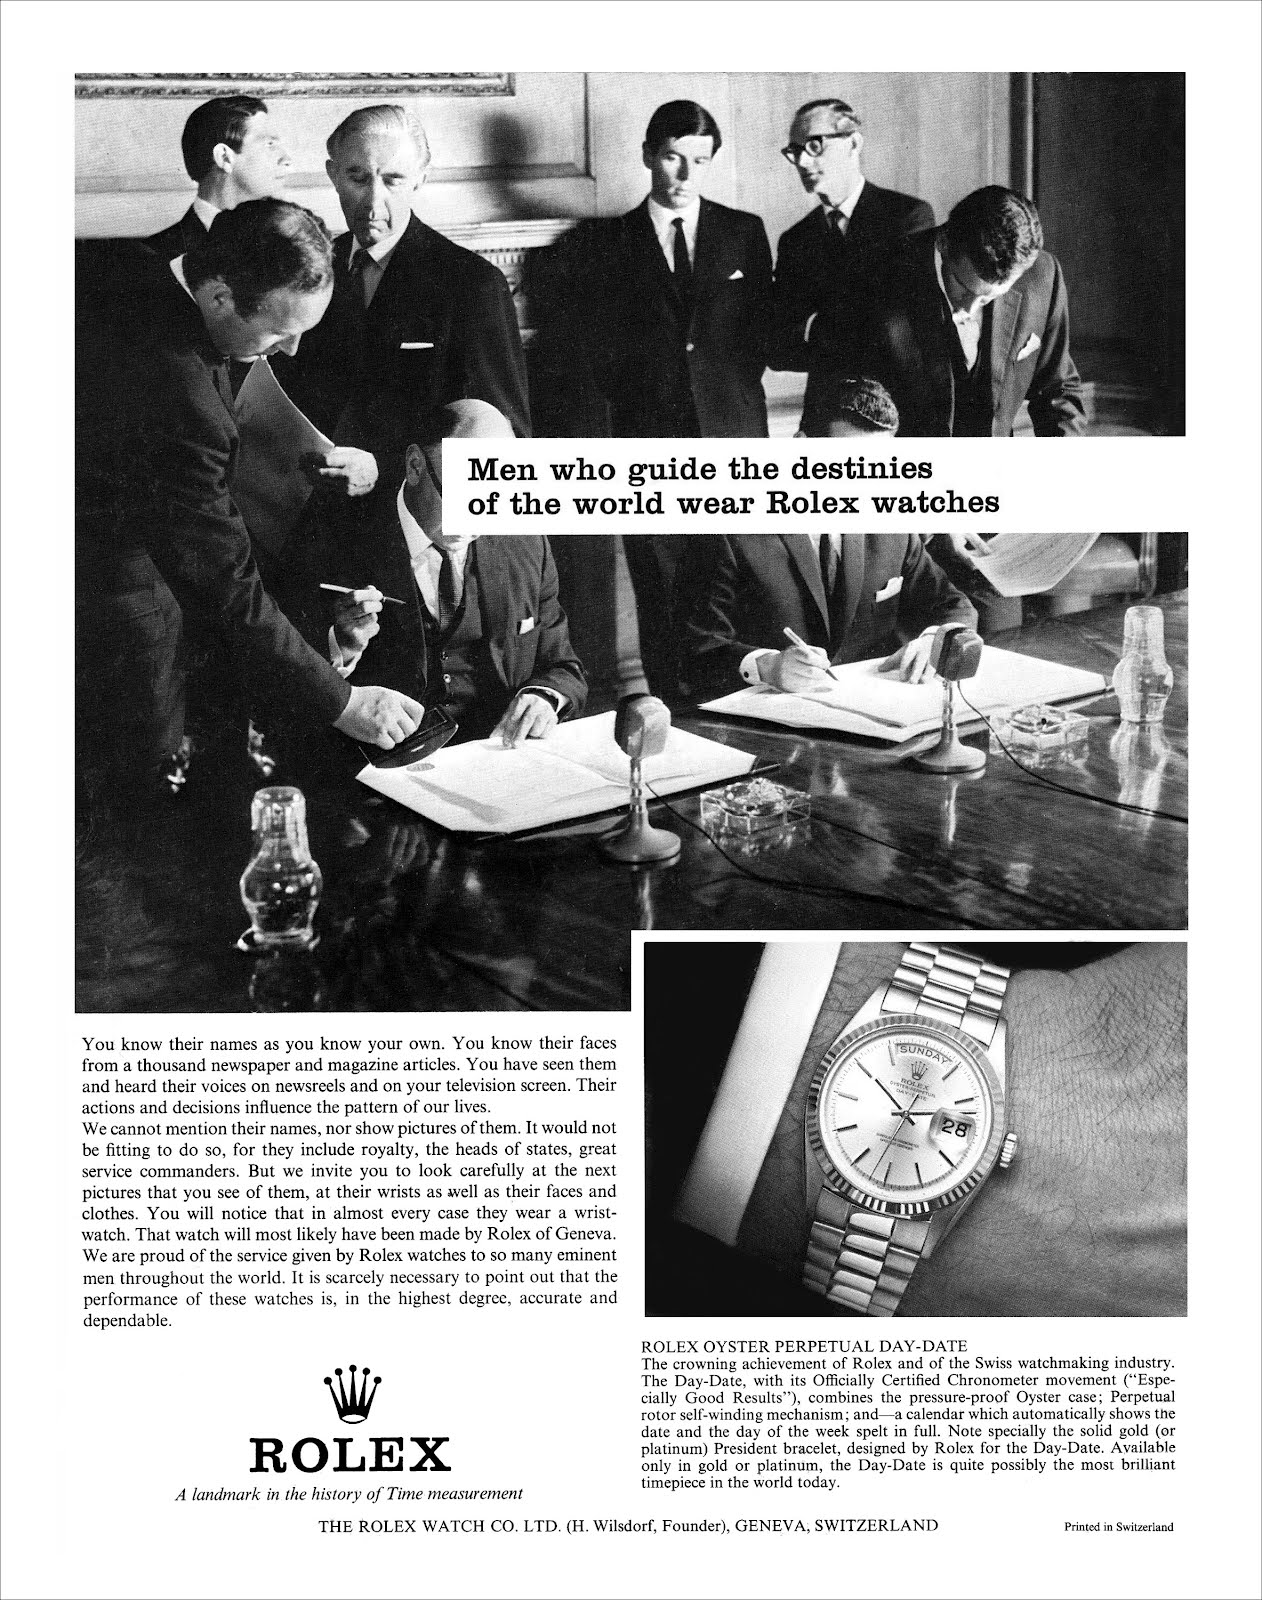 Men-Who-Guide-The-Desitinies-Of-The-World-Wear-Rolex